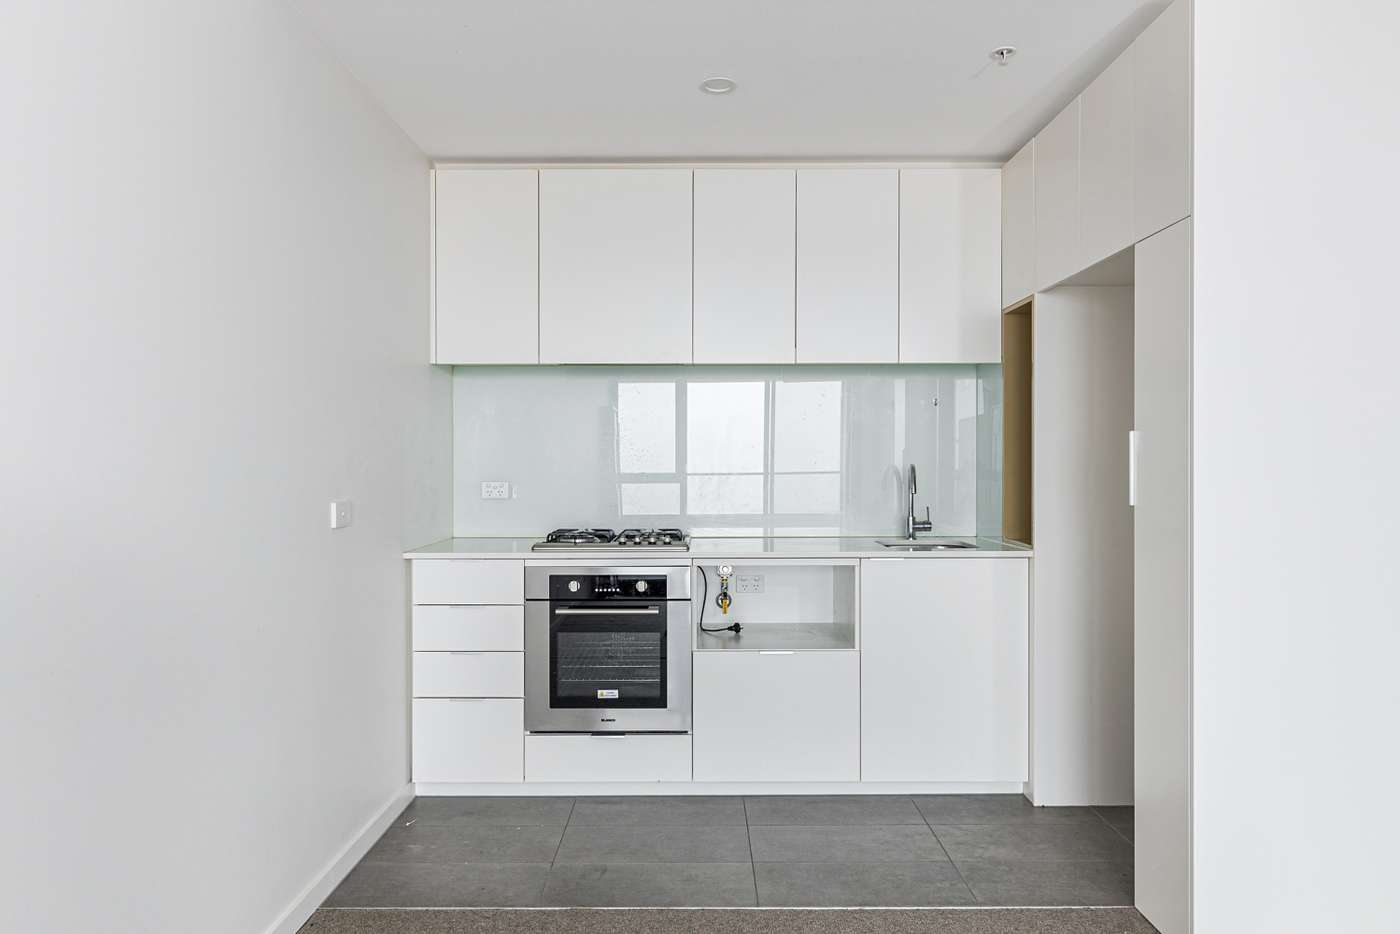 Main view of Homely apartment listing, 803/6-8 Wellington Road, Box Hill VIC 3128